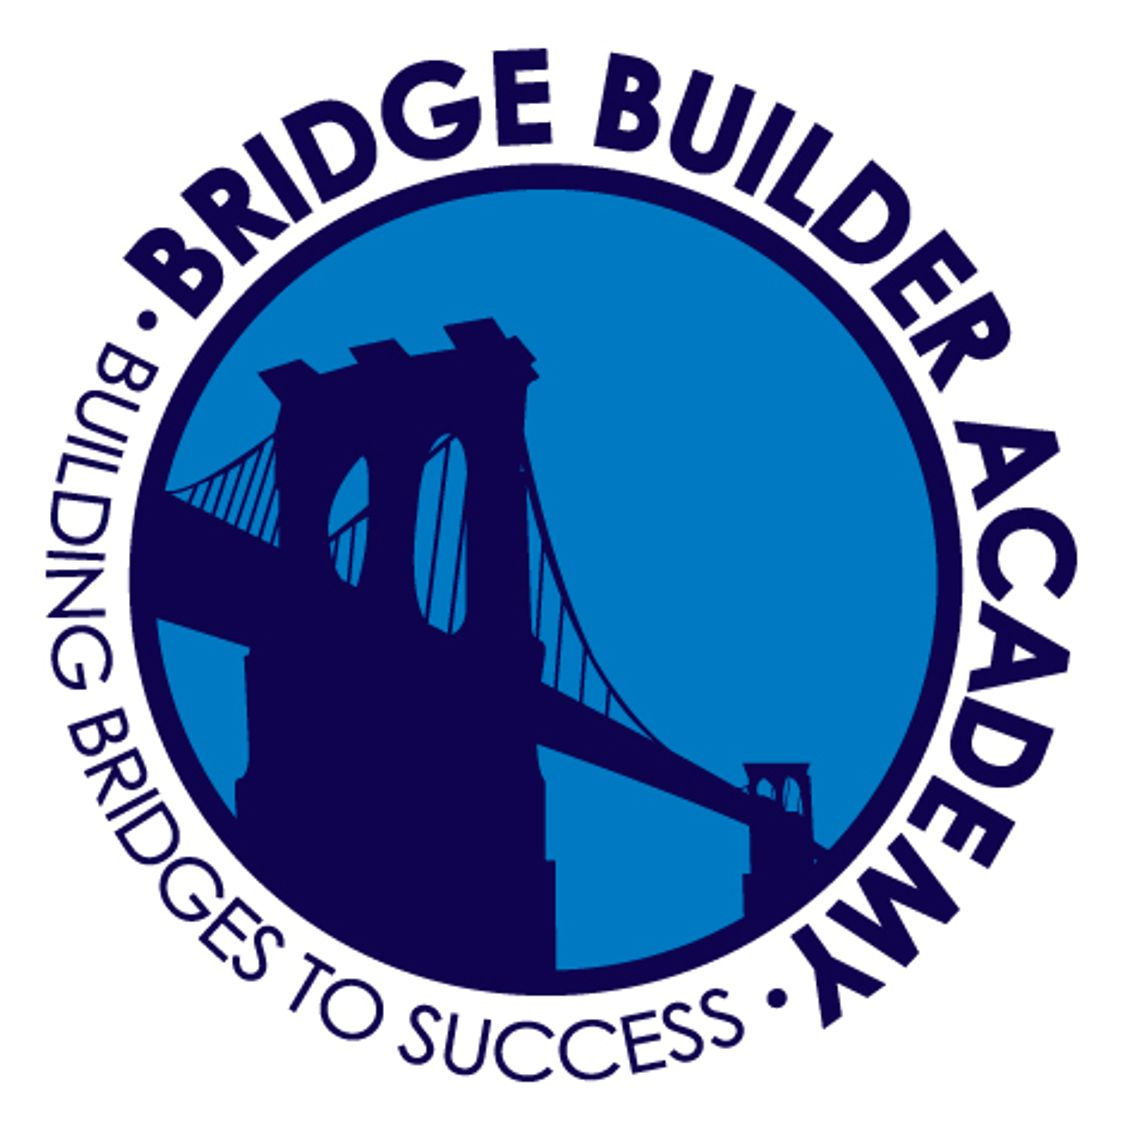 Bridge Builder Academy Photo #1 - We build bridges to success daily. Our mission is to assist students with unique learning styles and challenges to maximize their academic potential through individualized and customized educational plans.